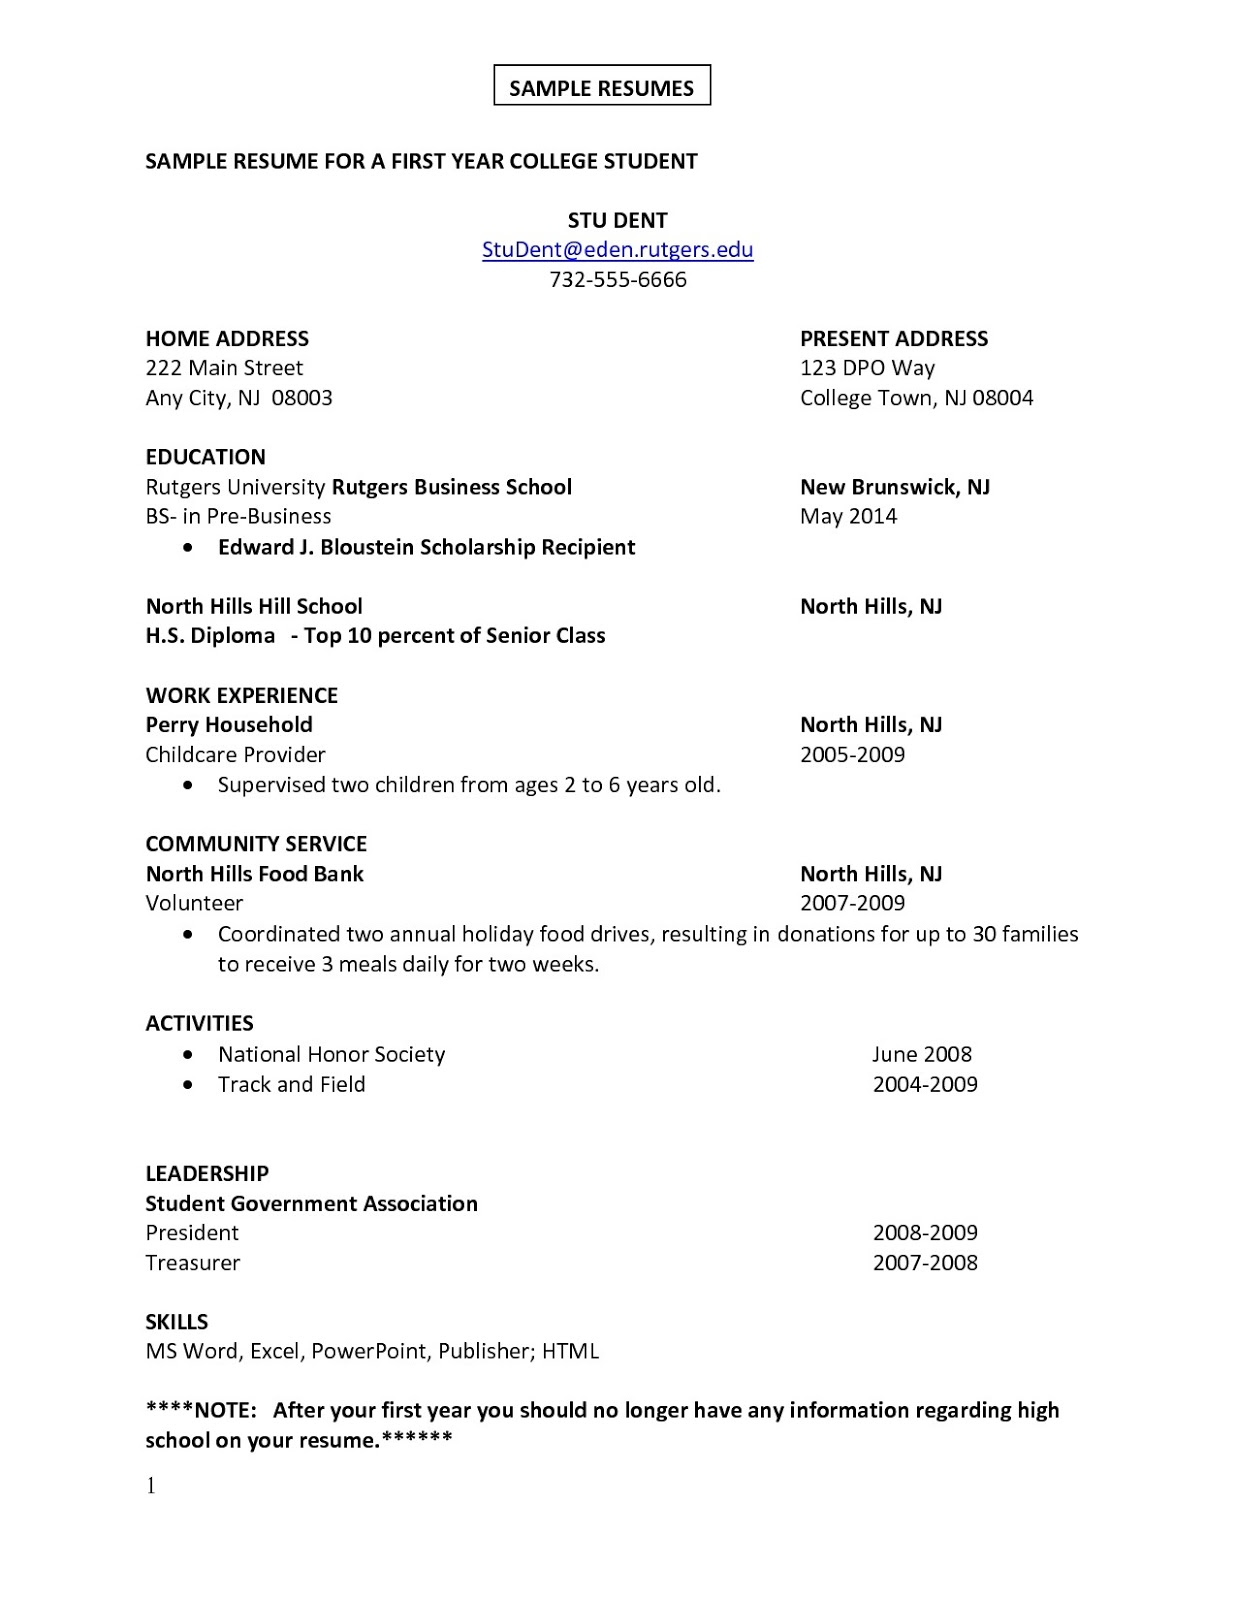 colby college career center resume guide her campus